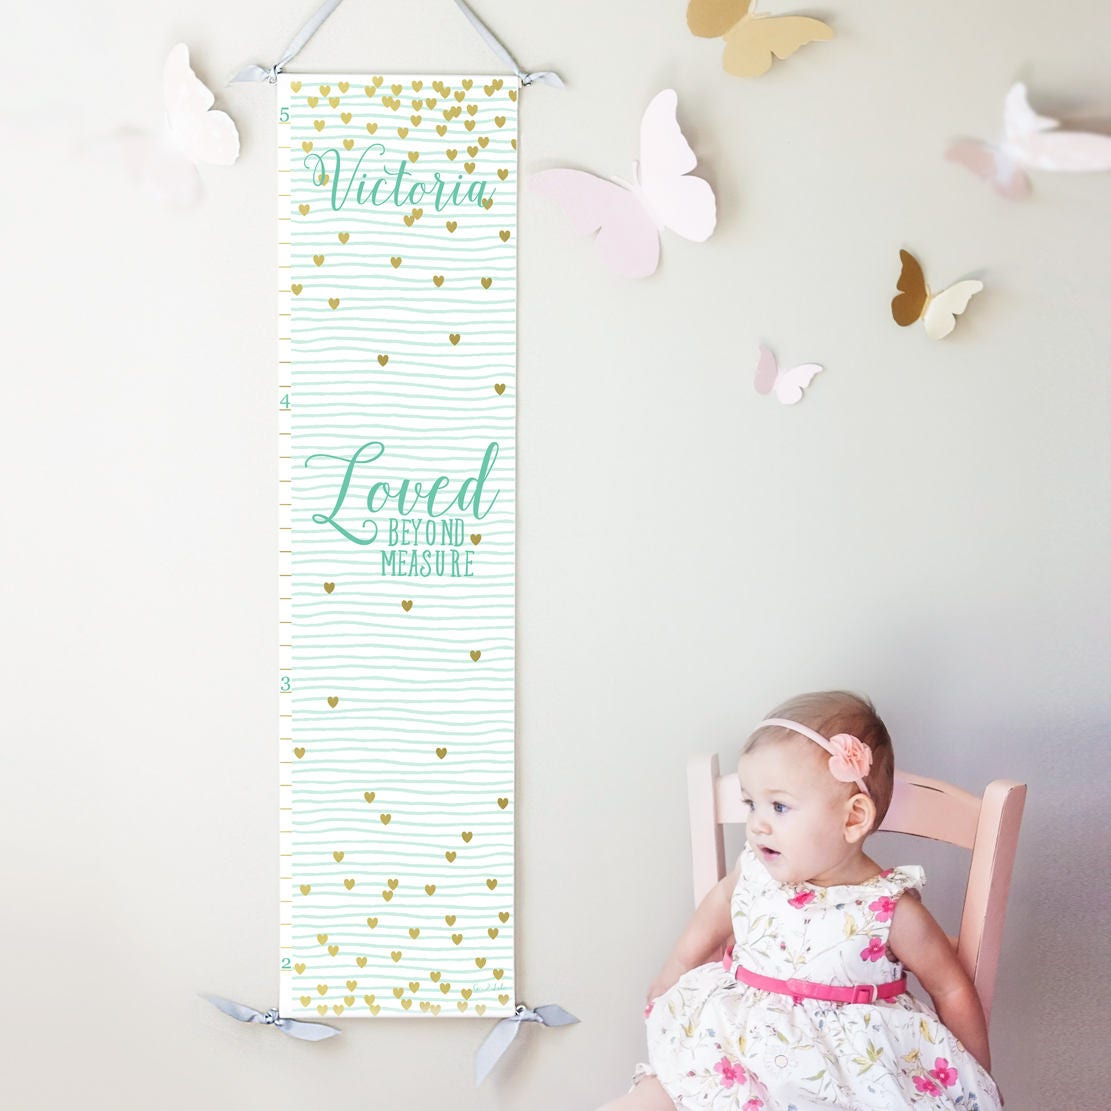 Personalized loved beyond measure canvas growth chart with mint personalized loved beyond measure canvas growth chart with mint stripes and gold hearts nvjuhfo Gallery